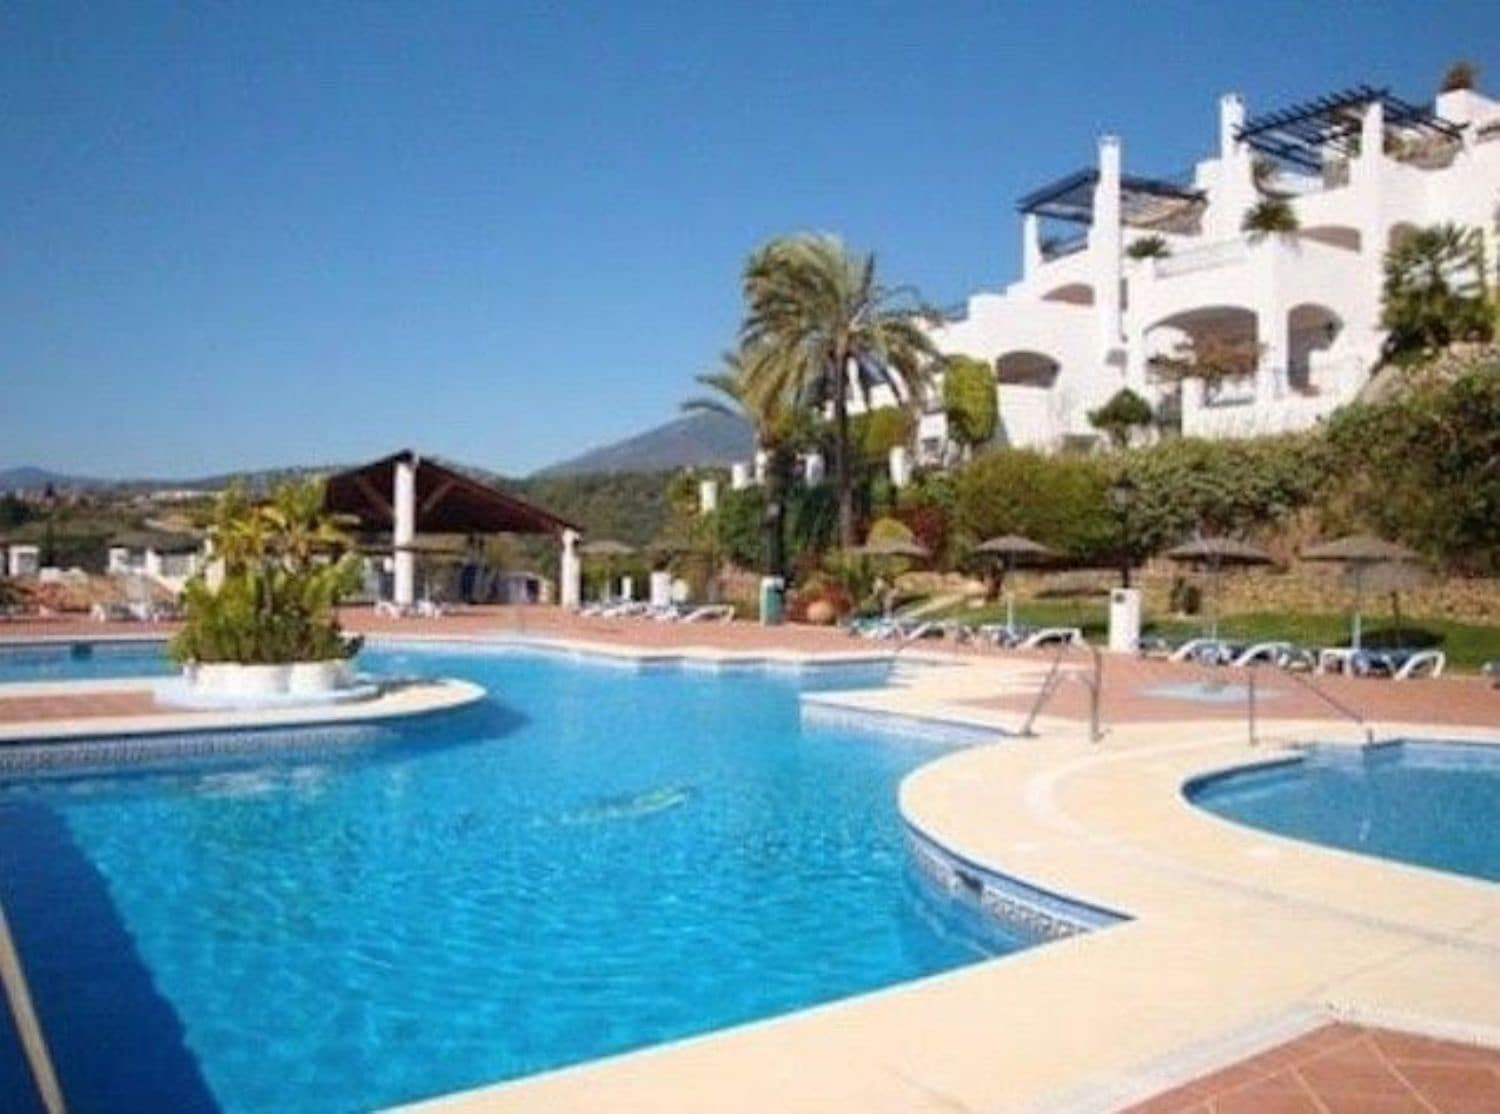 3 bedroom Apartment for sale in Marbella with pool - € 439,000 (Ref: 4750971)